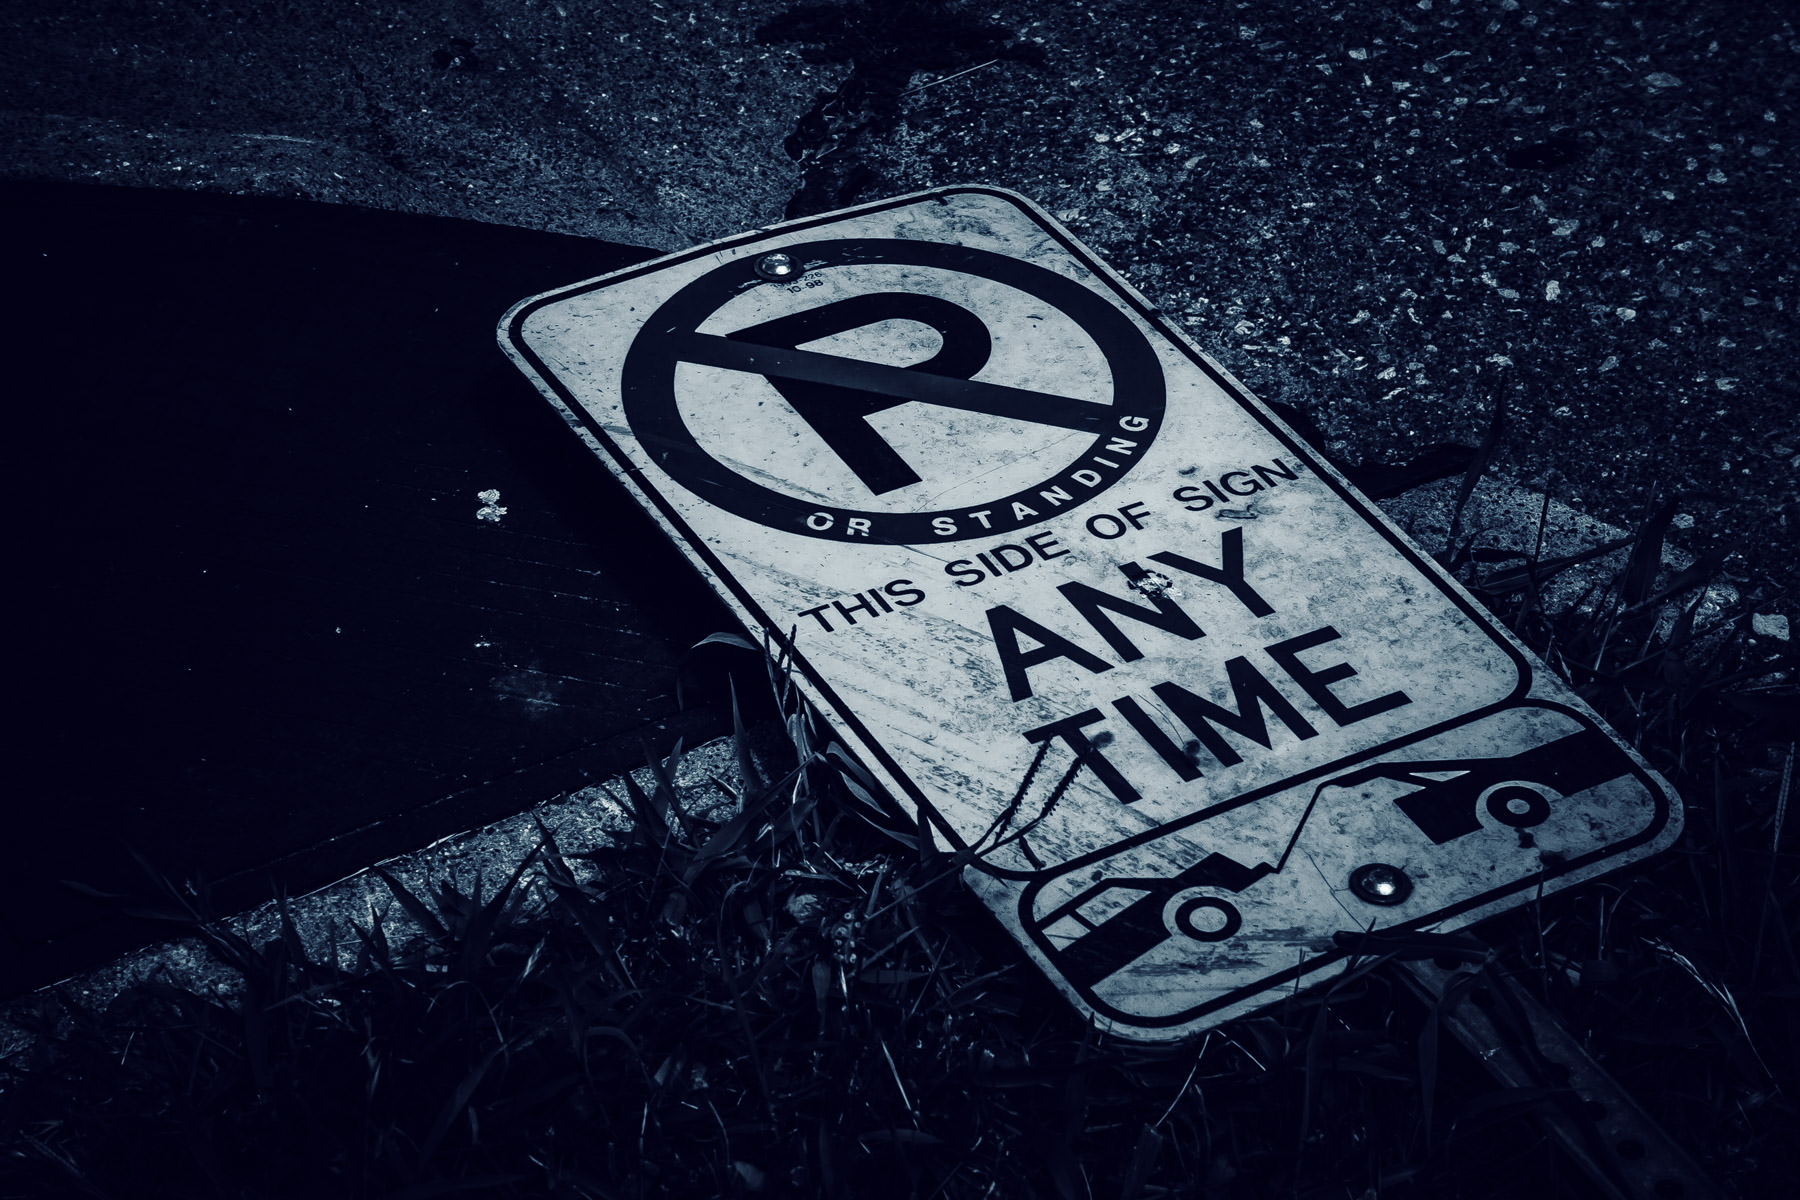 A fallen no parking sign spotted along a road in Uptown Dallas, Texas.